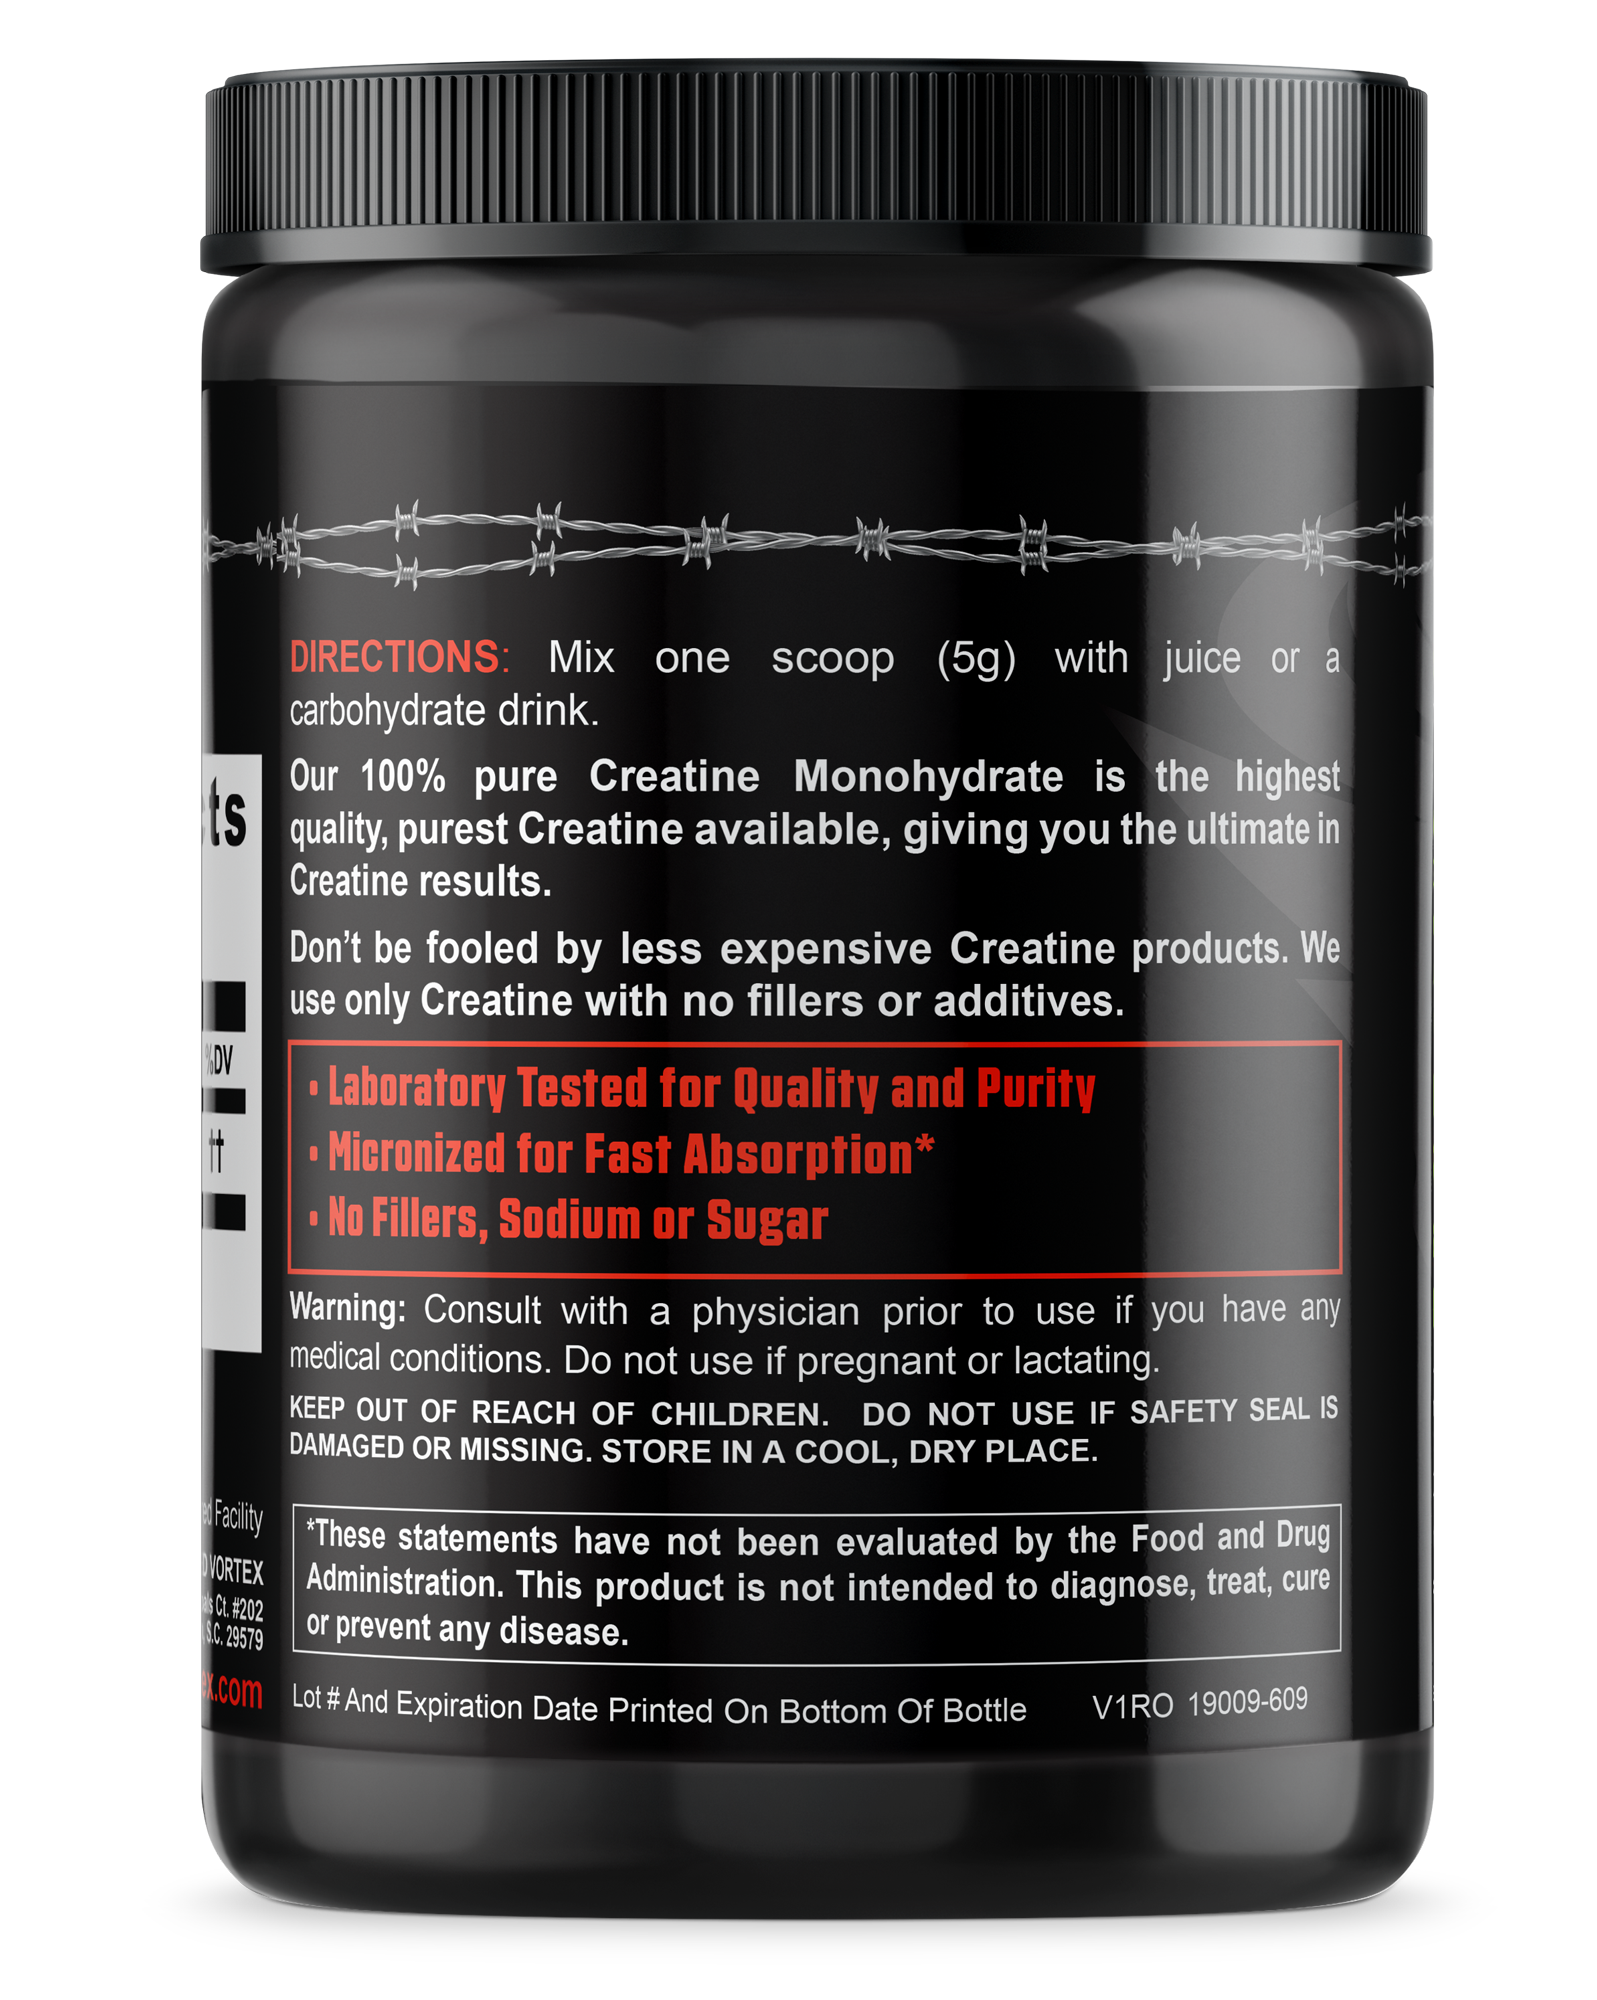 Twisted Creatine